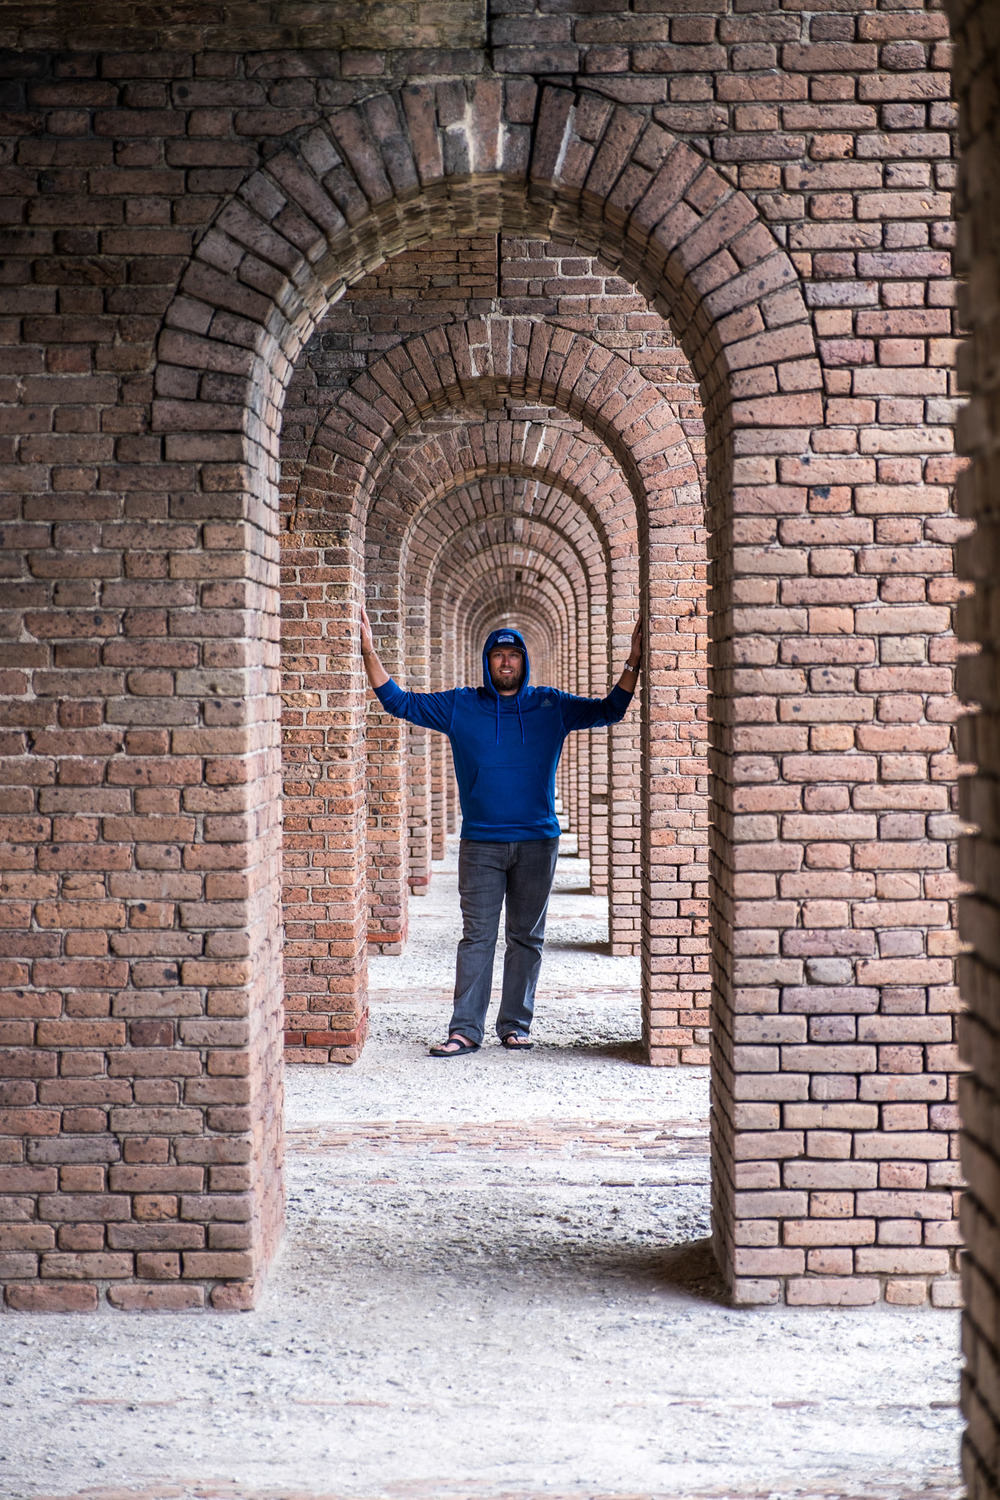 JI posing in the labyrinth halls of the fortress.